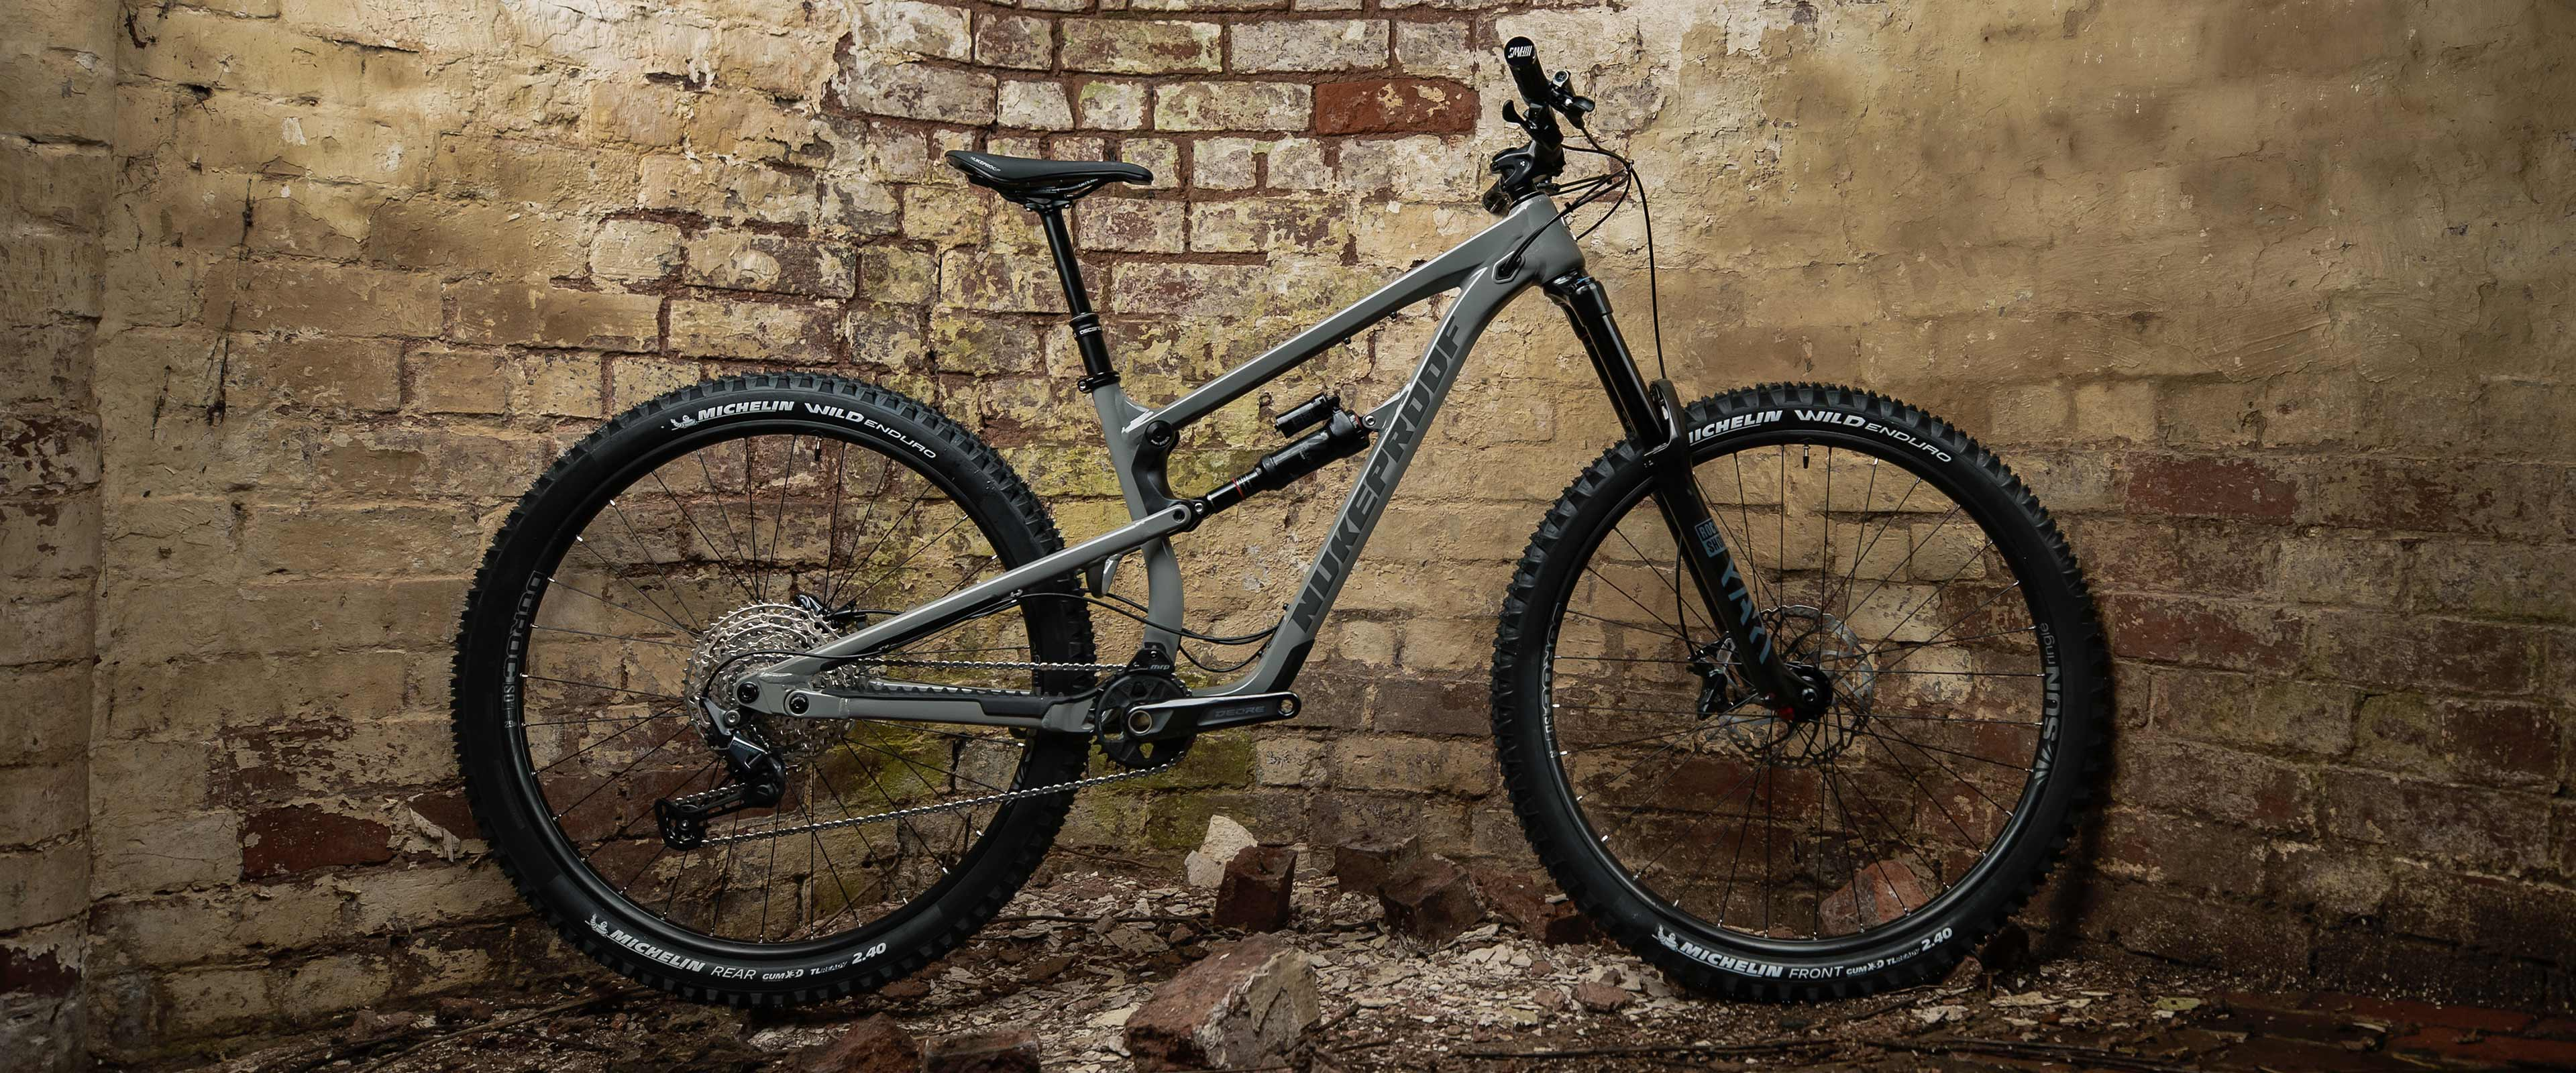 Nukeproof Mega 290 Alloy